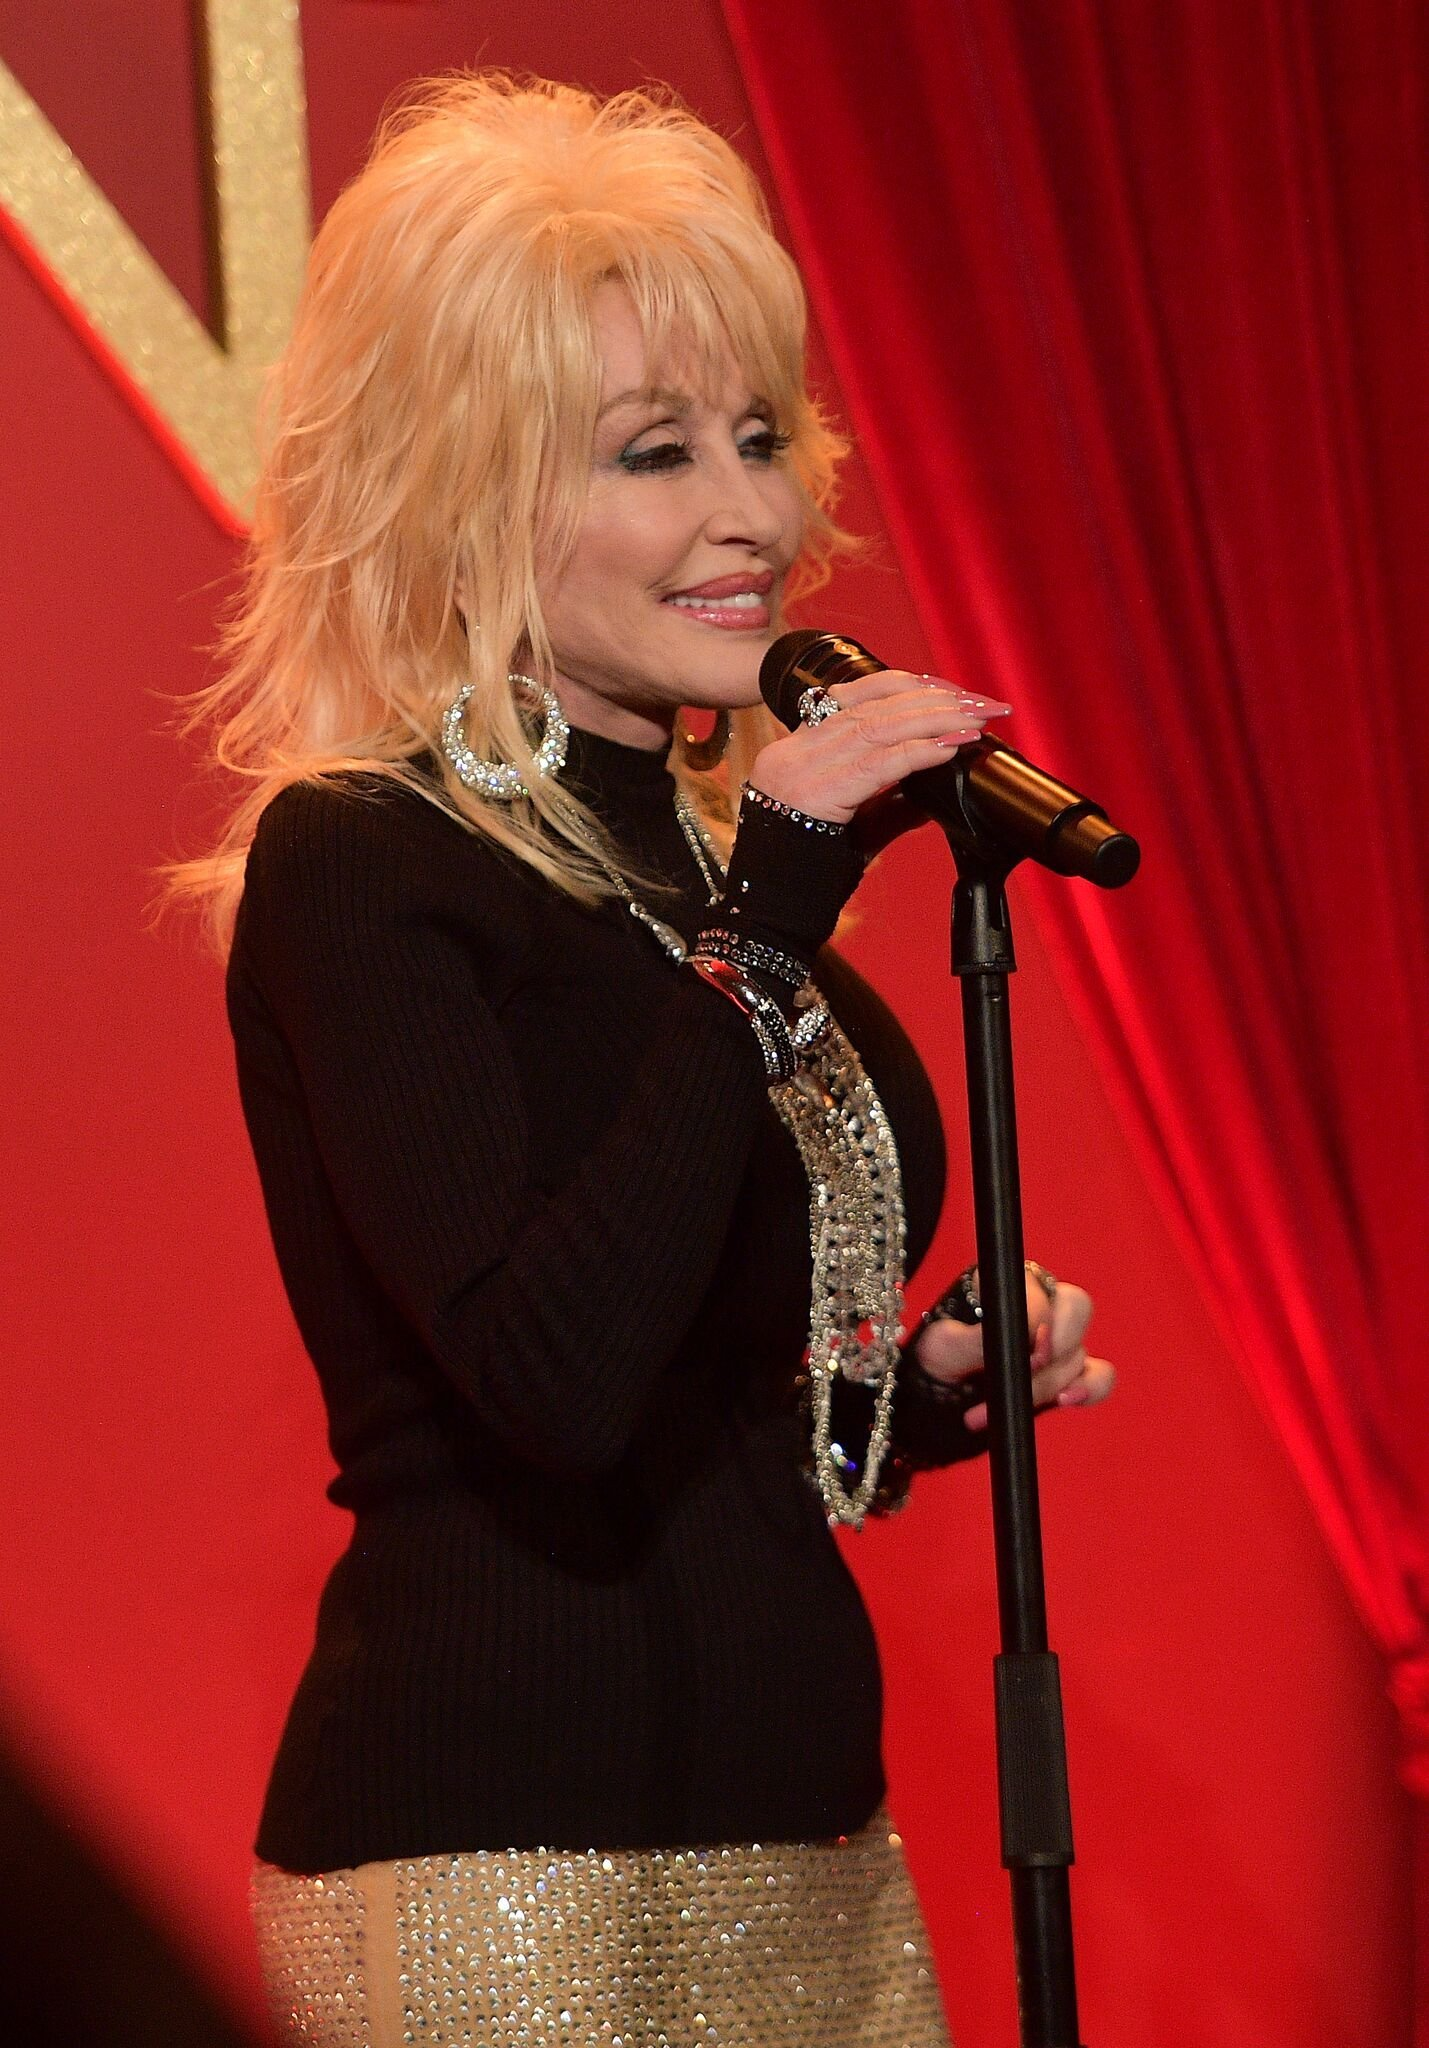 Dolly Parton performs onstage at a luncheon for the Netflix Film Dumplin' at Four Seasons Hotel Los Angeles | Getty Images / Global Images Ukraine